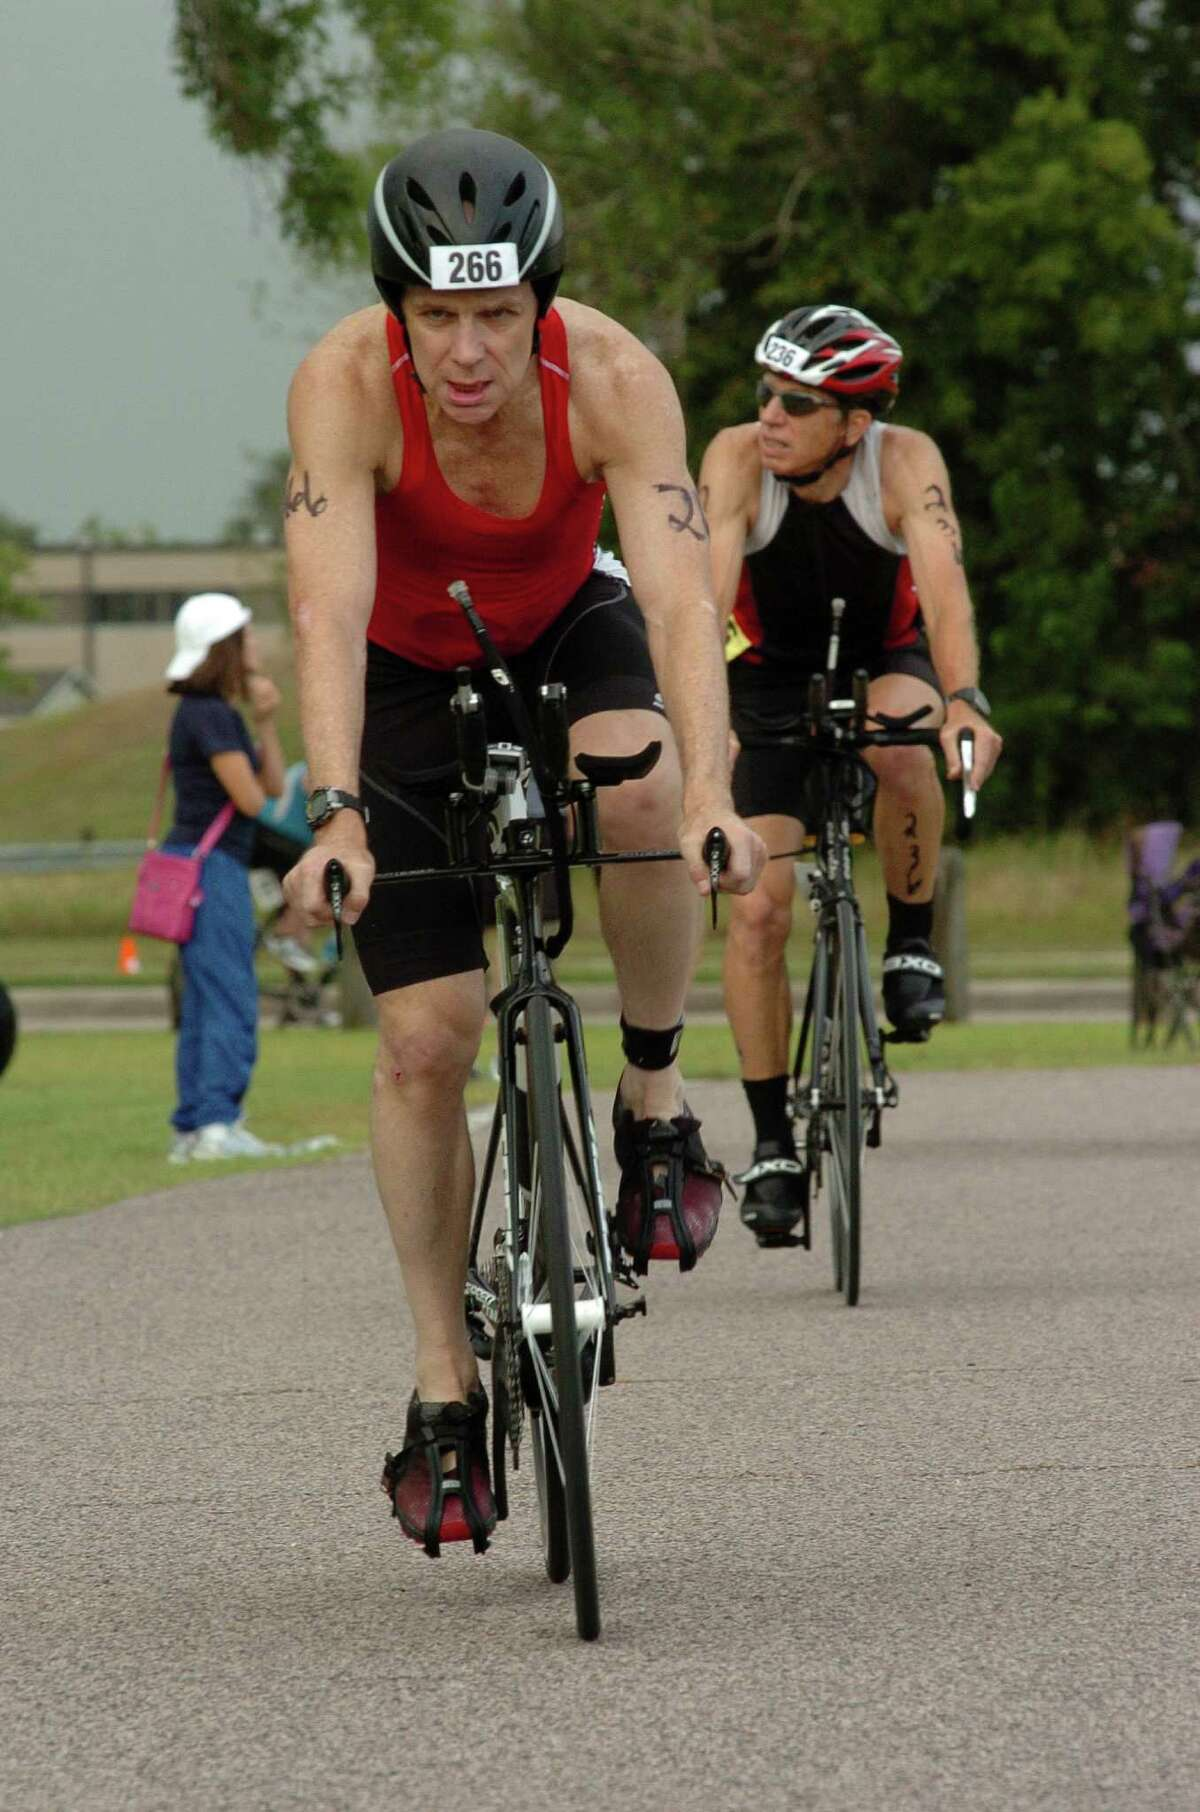 Dan Black placed first in his age group in the YMCA's Y Freedom Triathlon in Pearland on Sunday, the day before he completed his third round of chemotherapy.